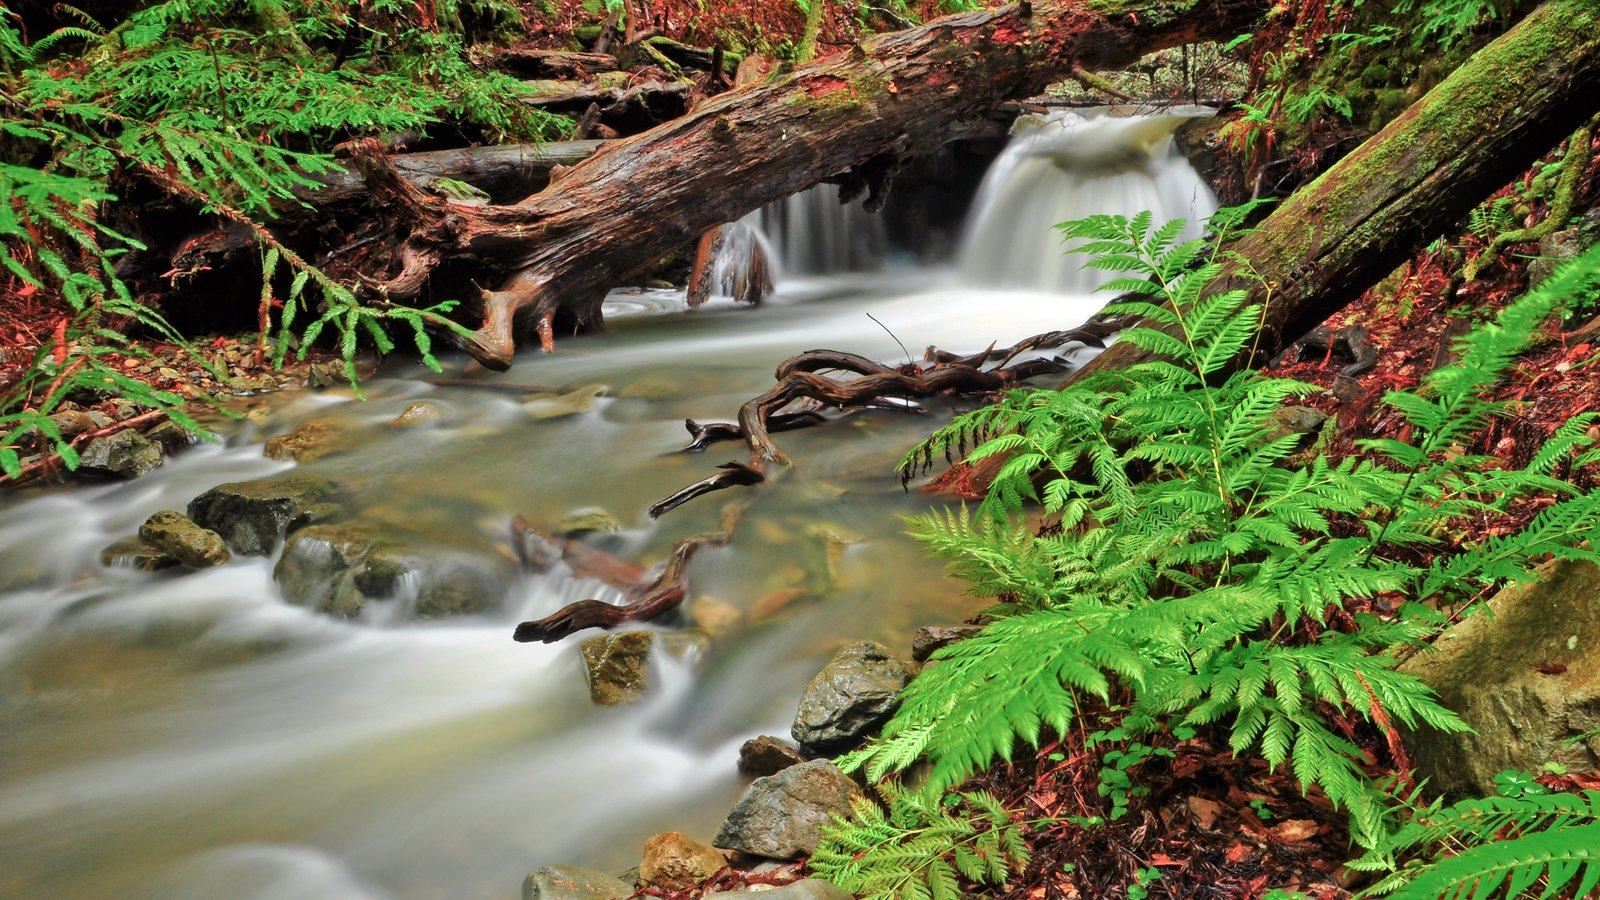 Muir Woods showing a river or creek, forests and landscape views